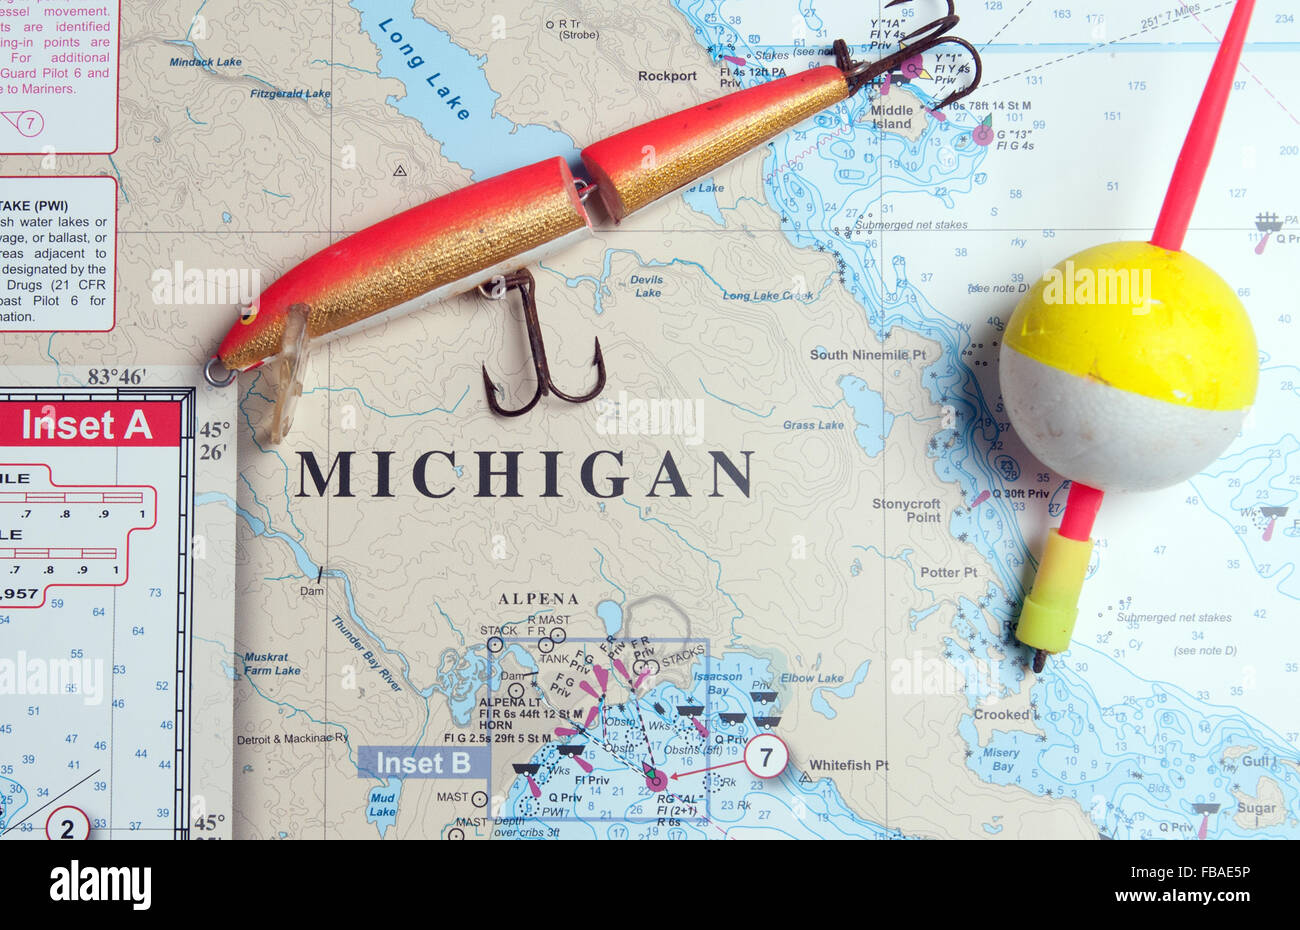 Fishing, boating, navigation; all require survival skills on the Great Lakes. - Stock Image